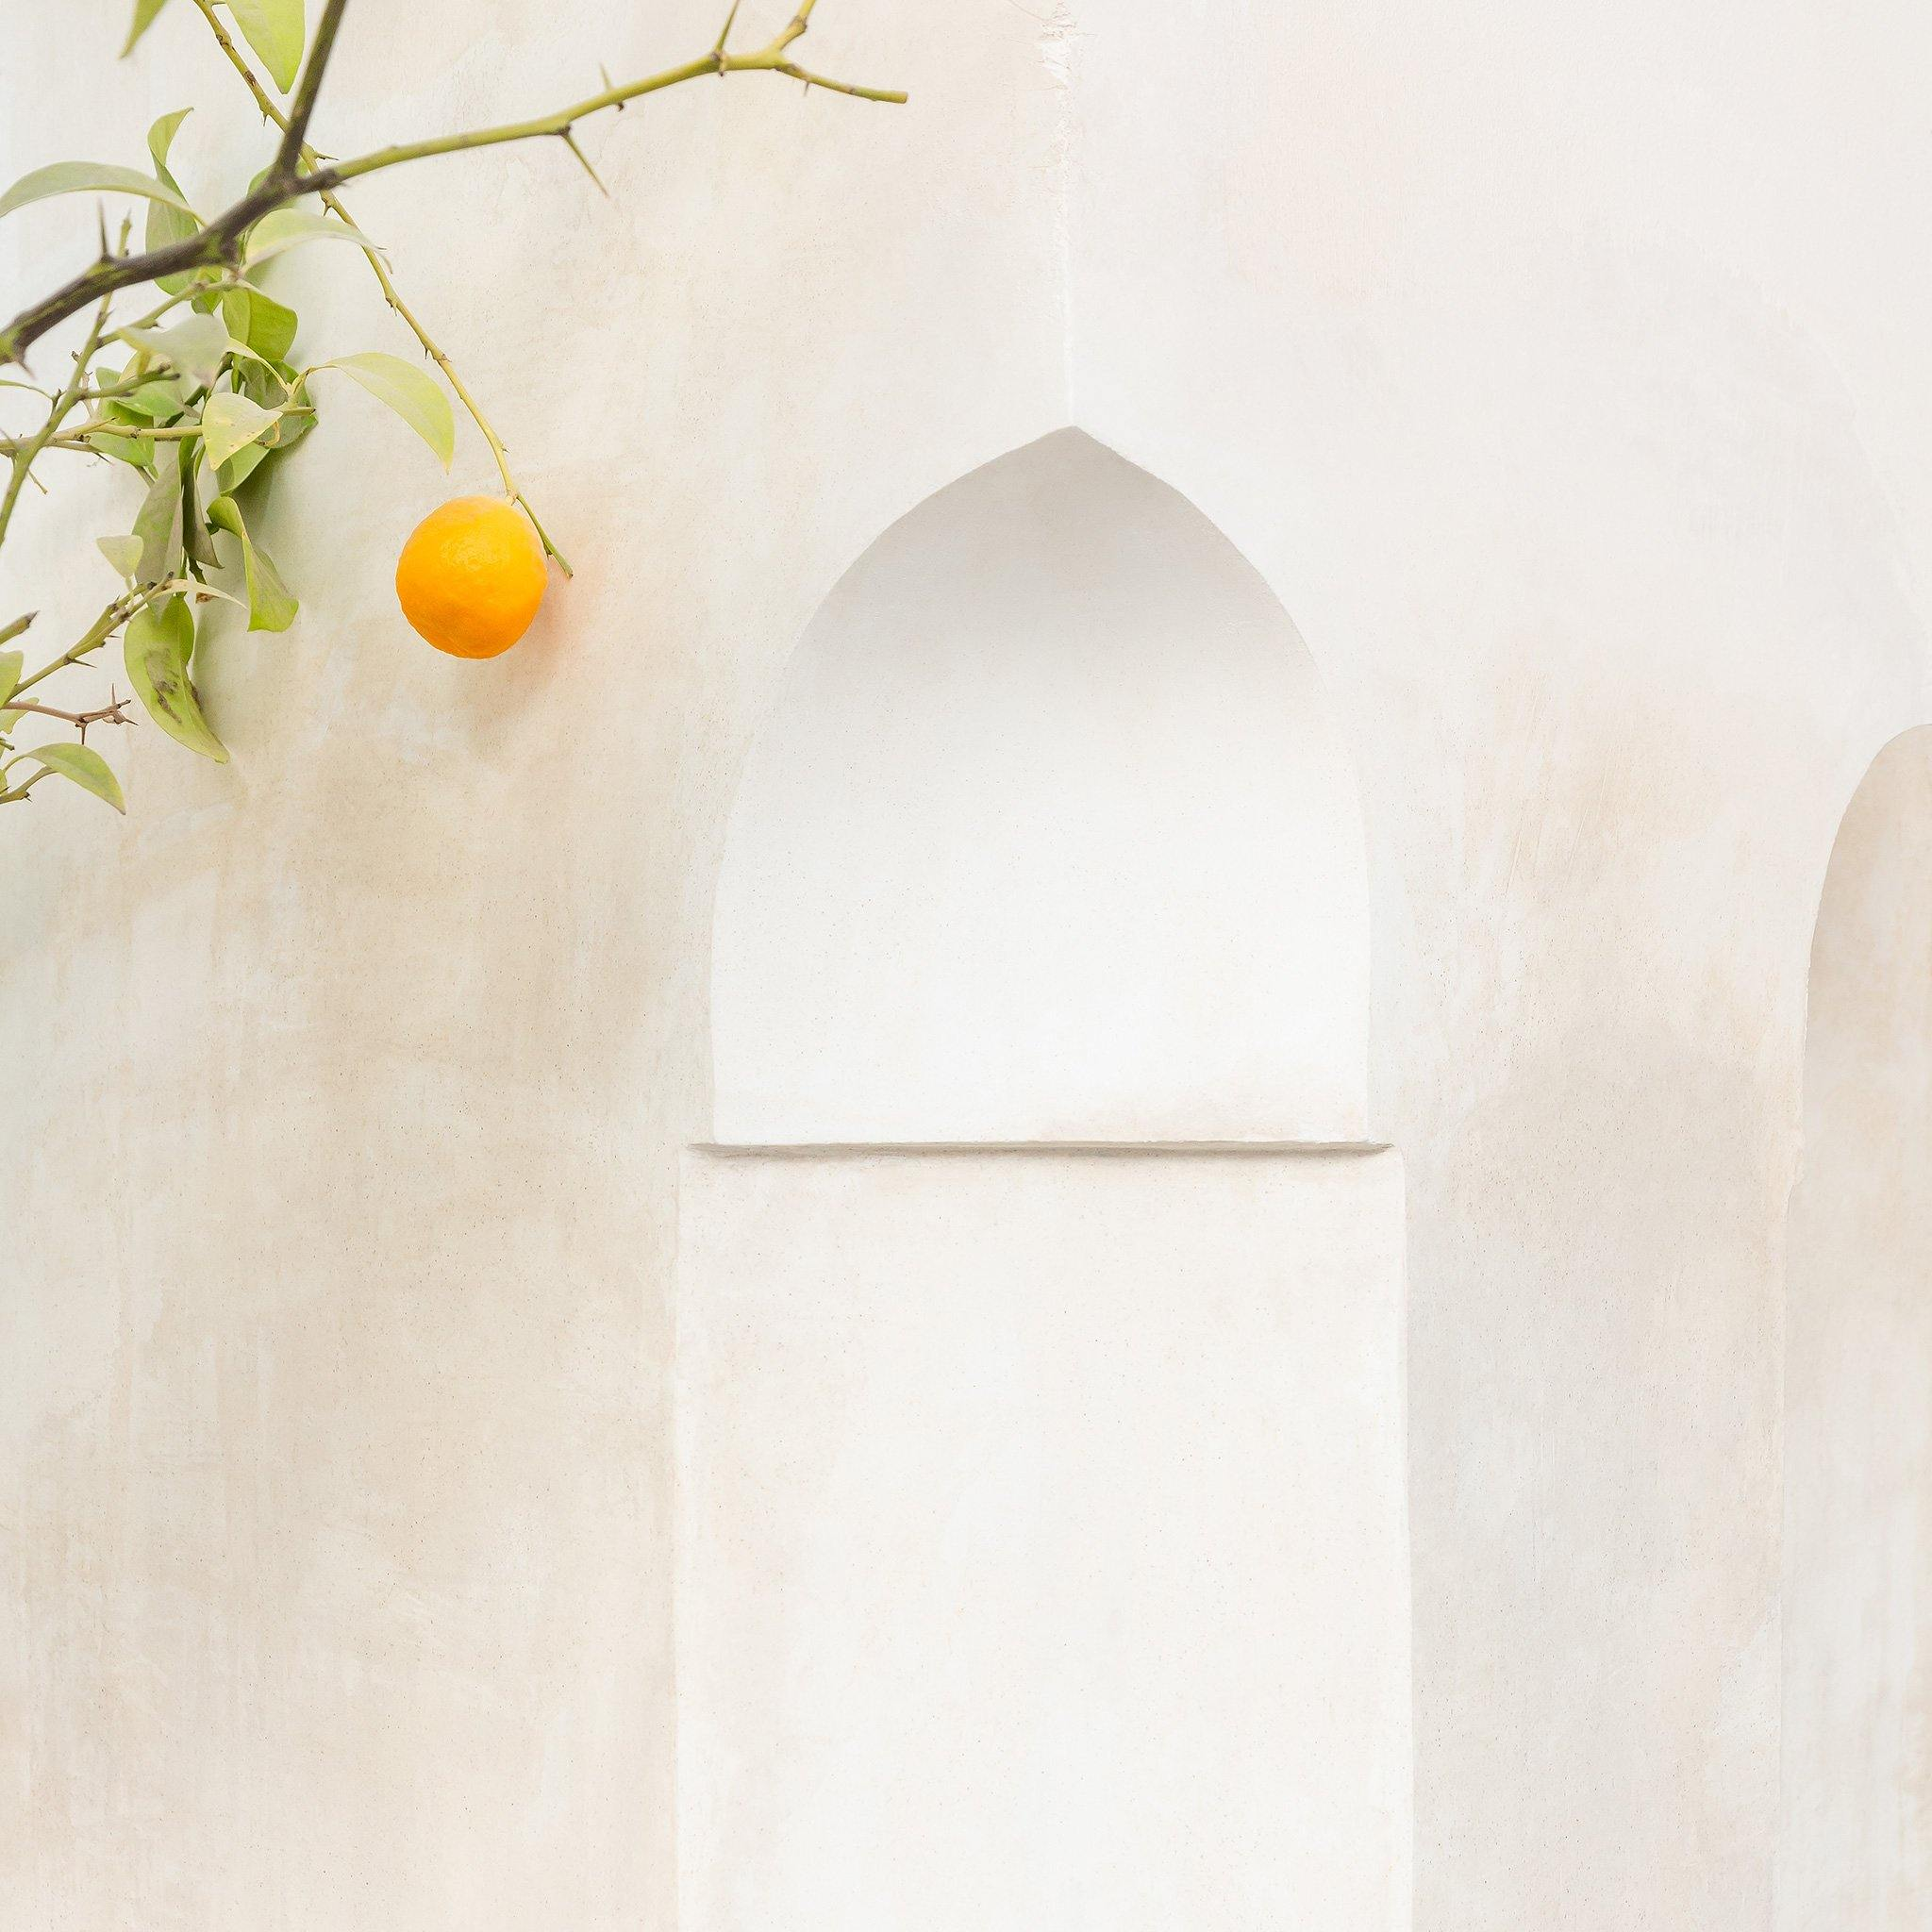 Morocco Pastels 02, Photography  by  Morocco Pastels 02 Tappan